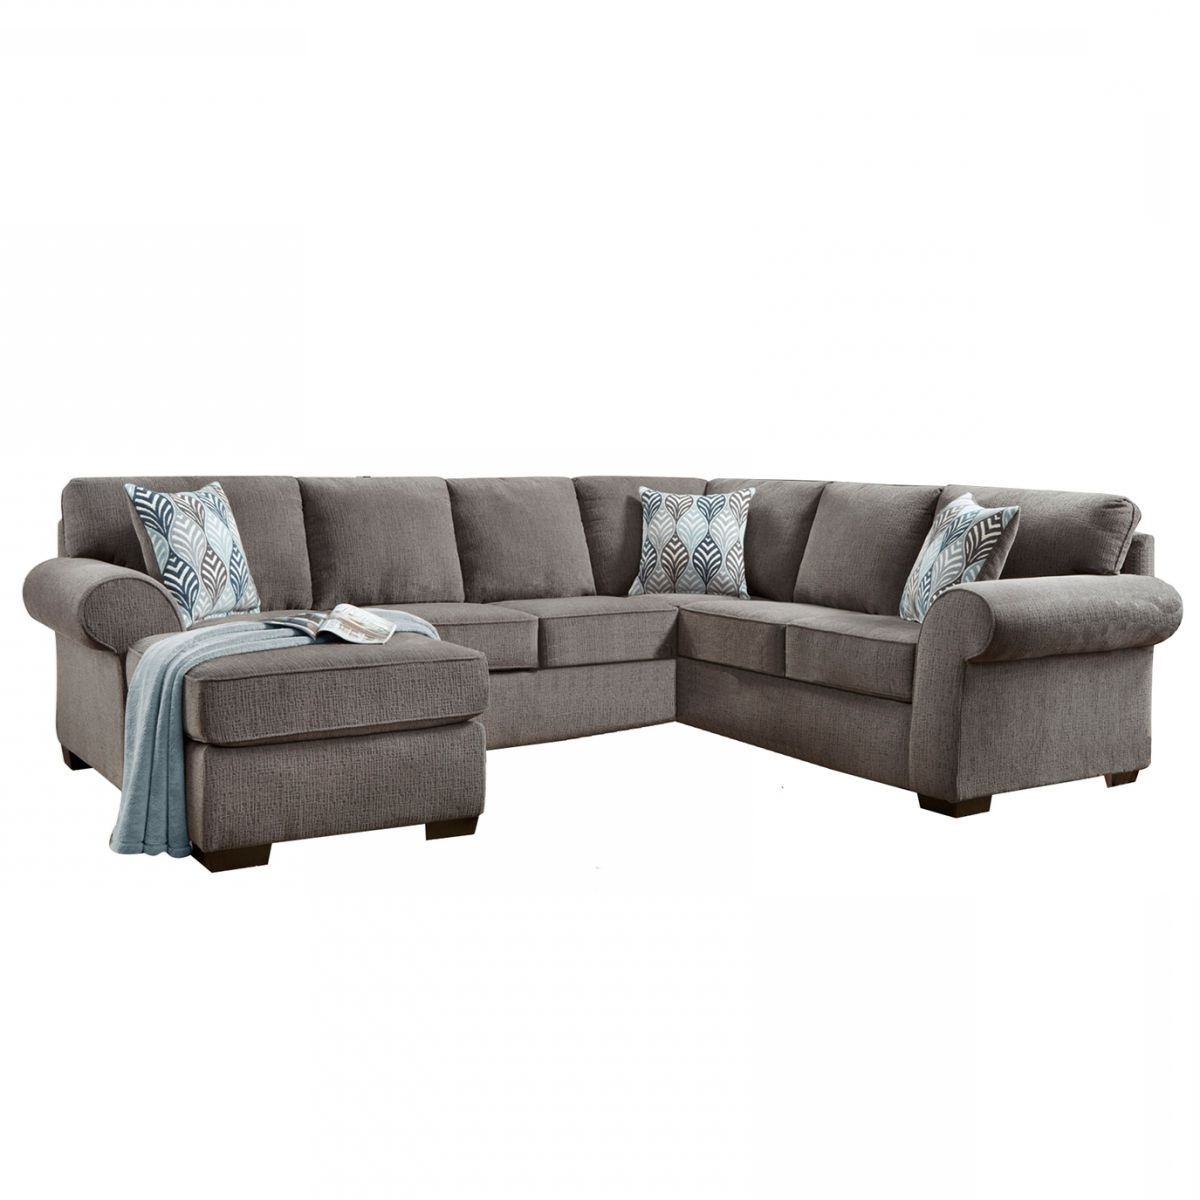 Sectional Sofa Sets Large Small Couches Grey – Locsbyhelenelorasa In Favorite Mcdade Graphite 2 Piece Sectionals With Laf Chaise (View 16 of 20)